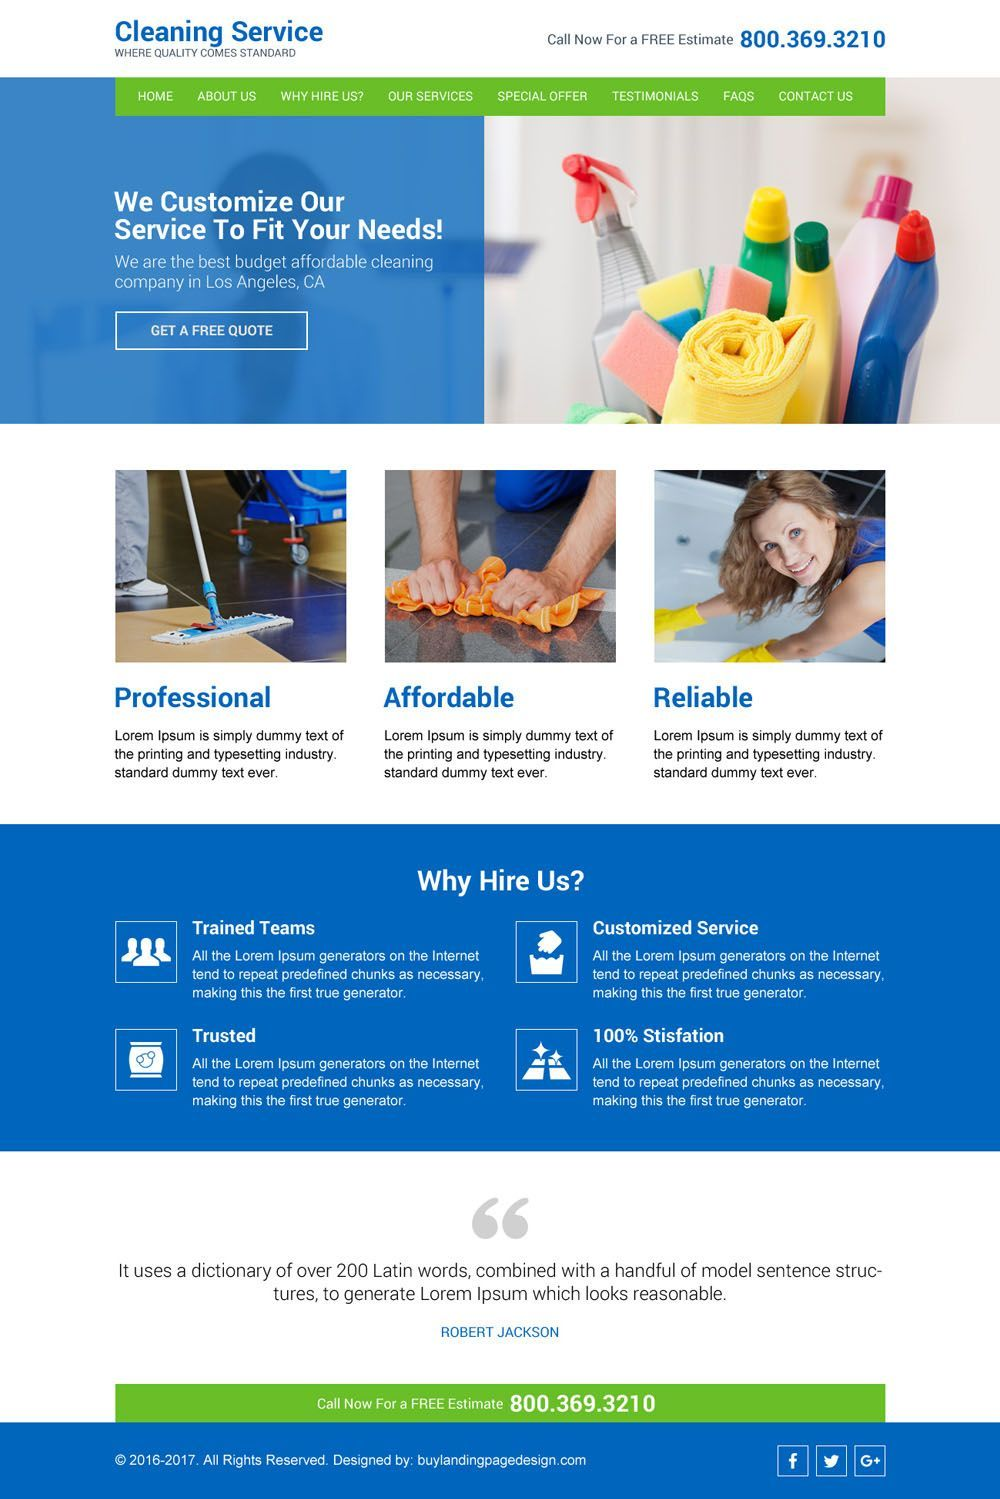 cleaning service company website design template (With